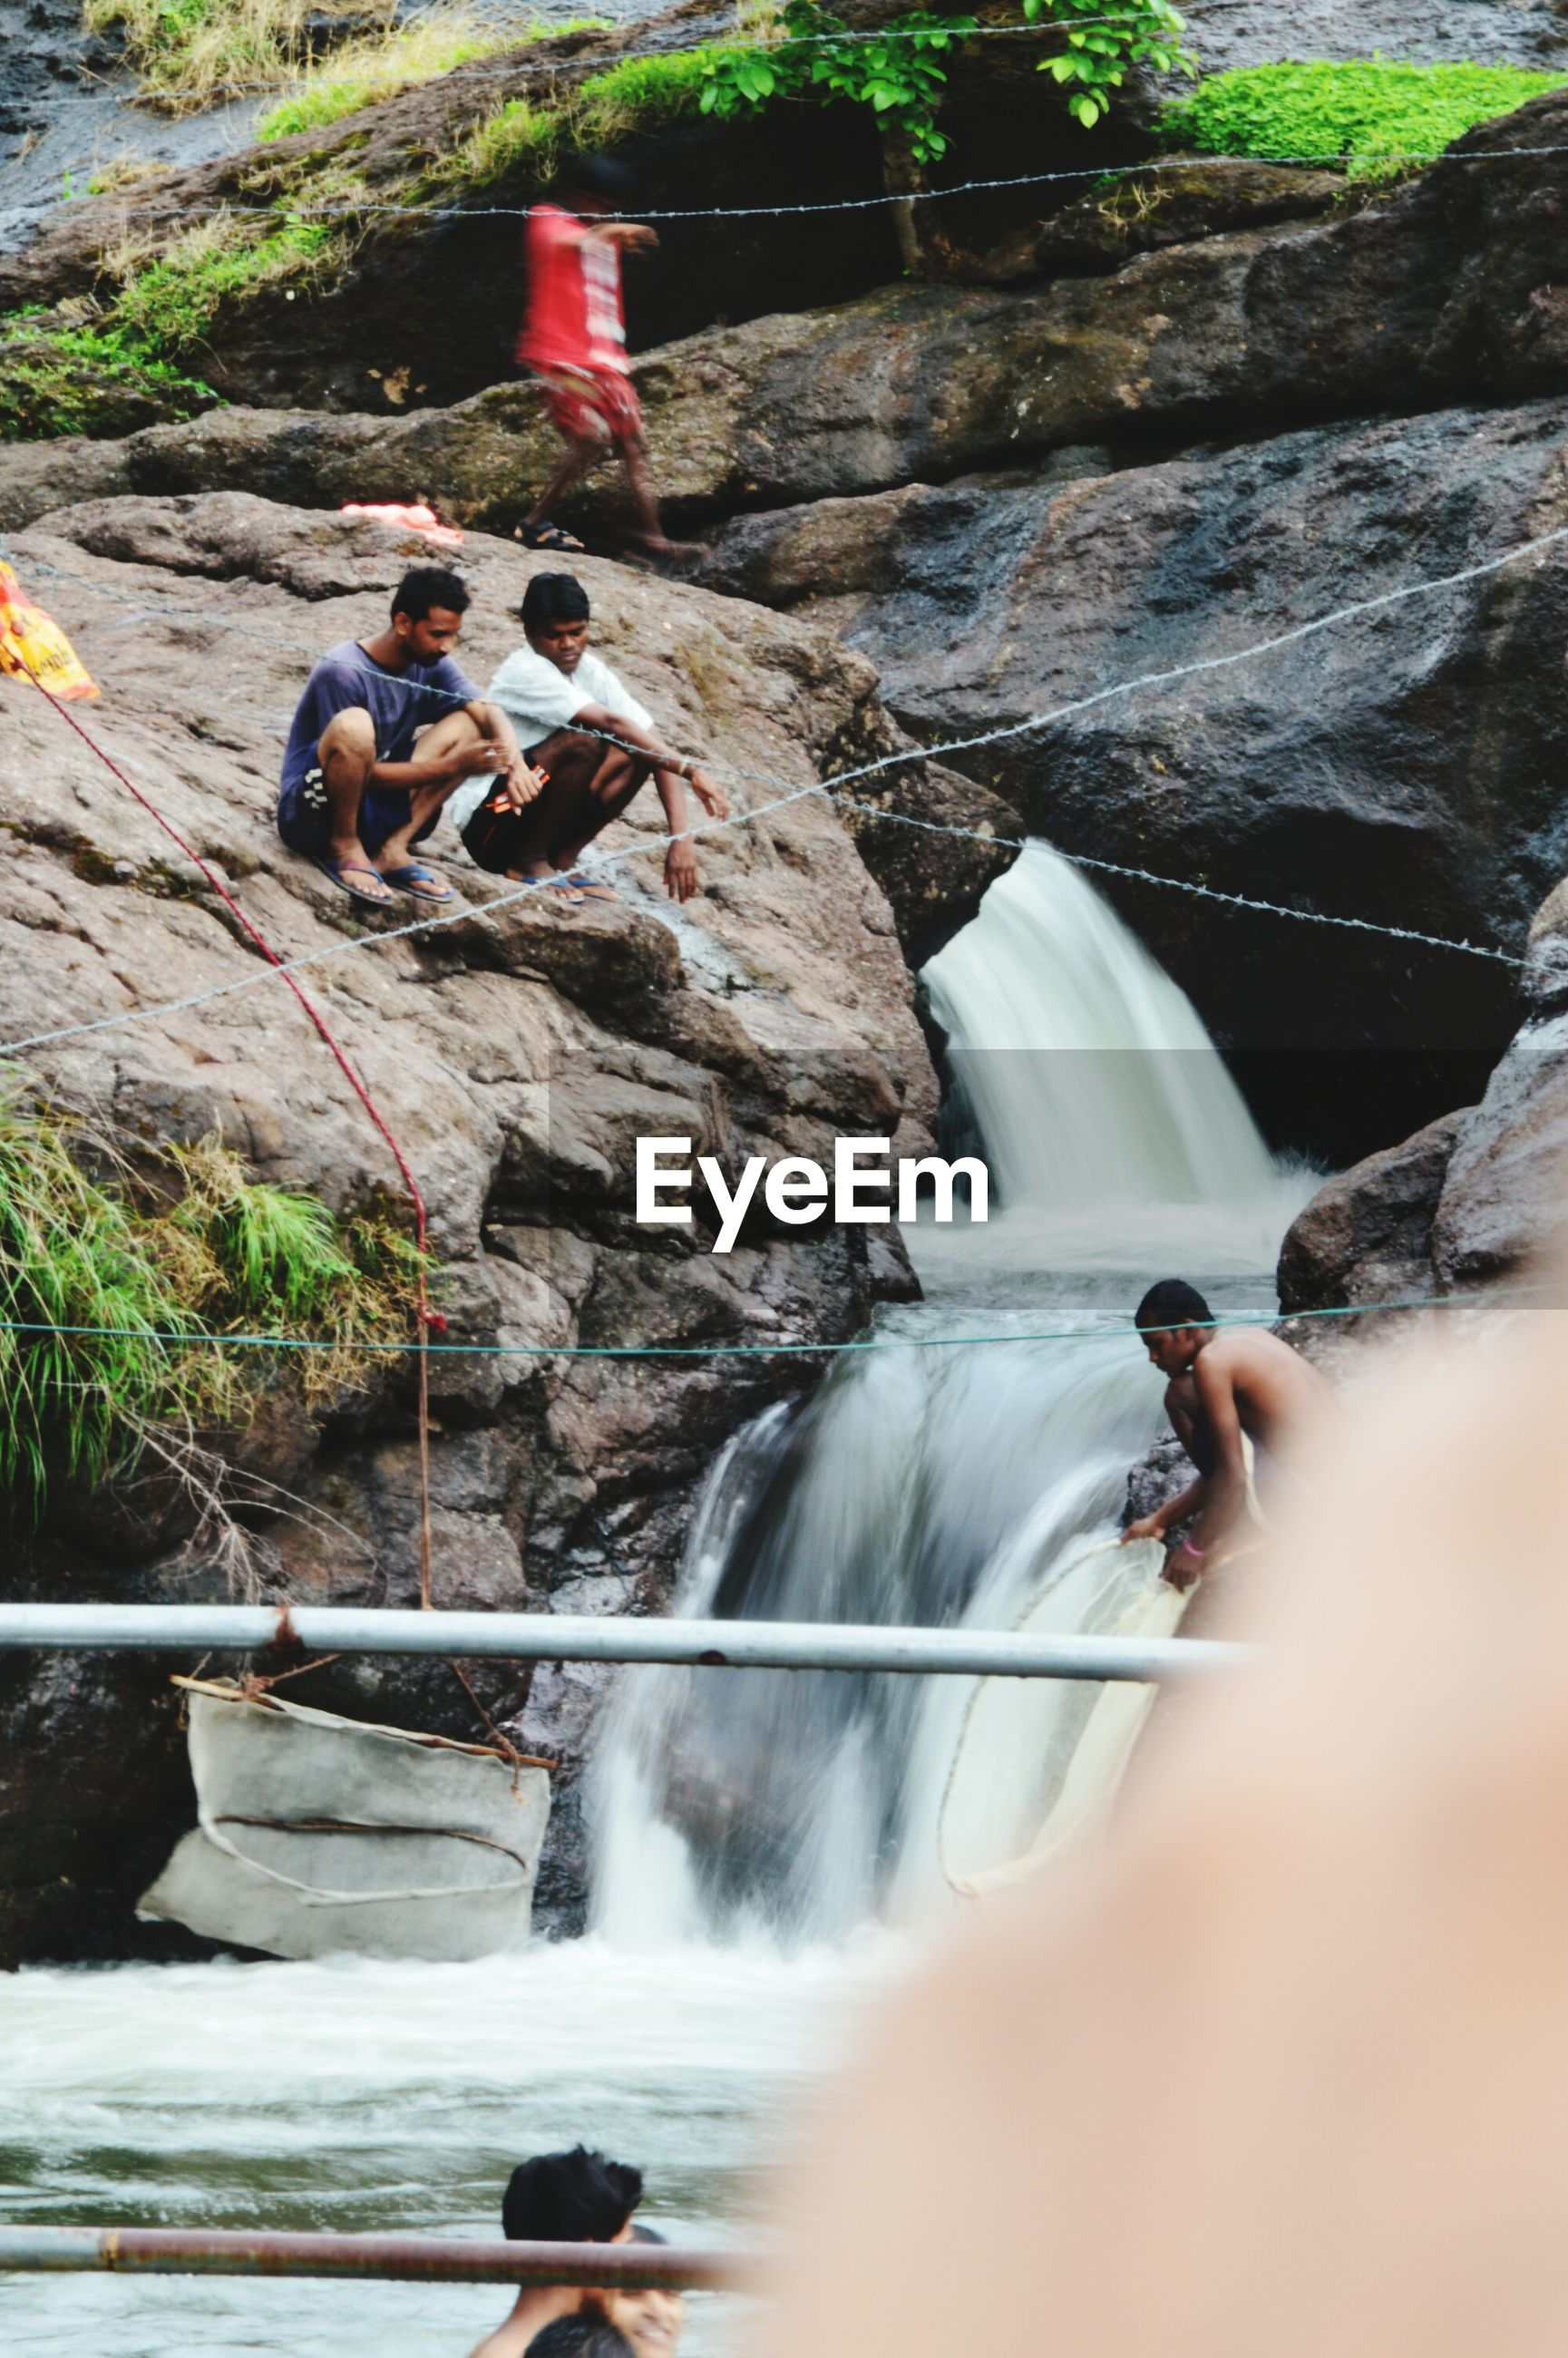 water, motion, waterfall, real people, day, rock - object, long exposure, river, outdoors, men, nature, beauty in nature, adventure, wooden raft, togetherness, human hand, people